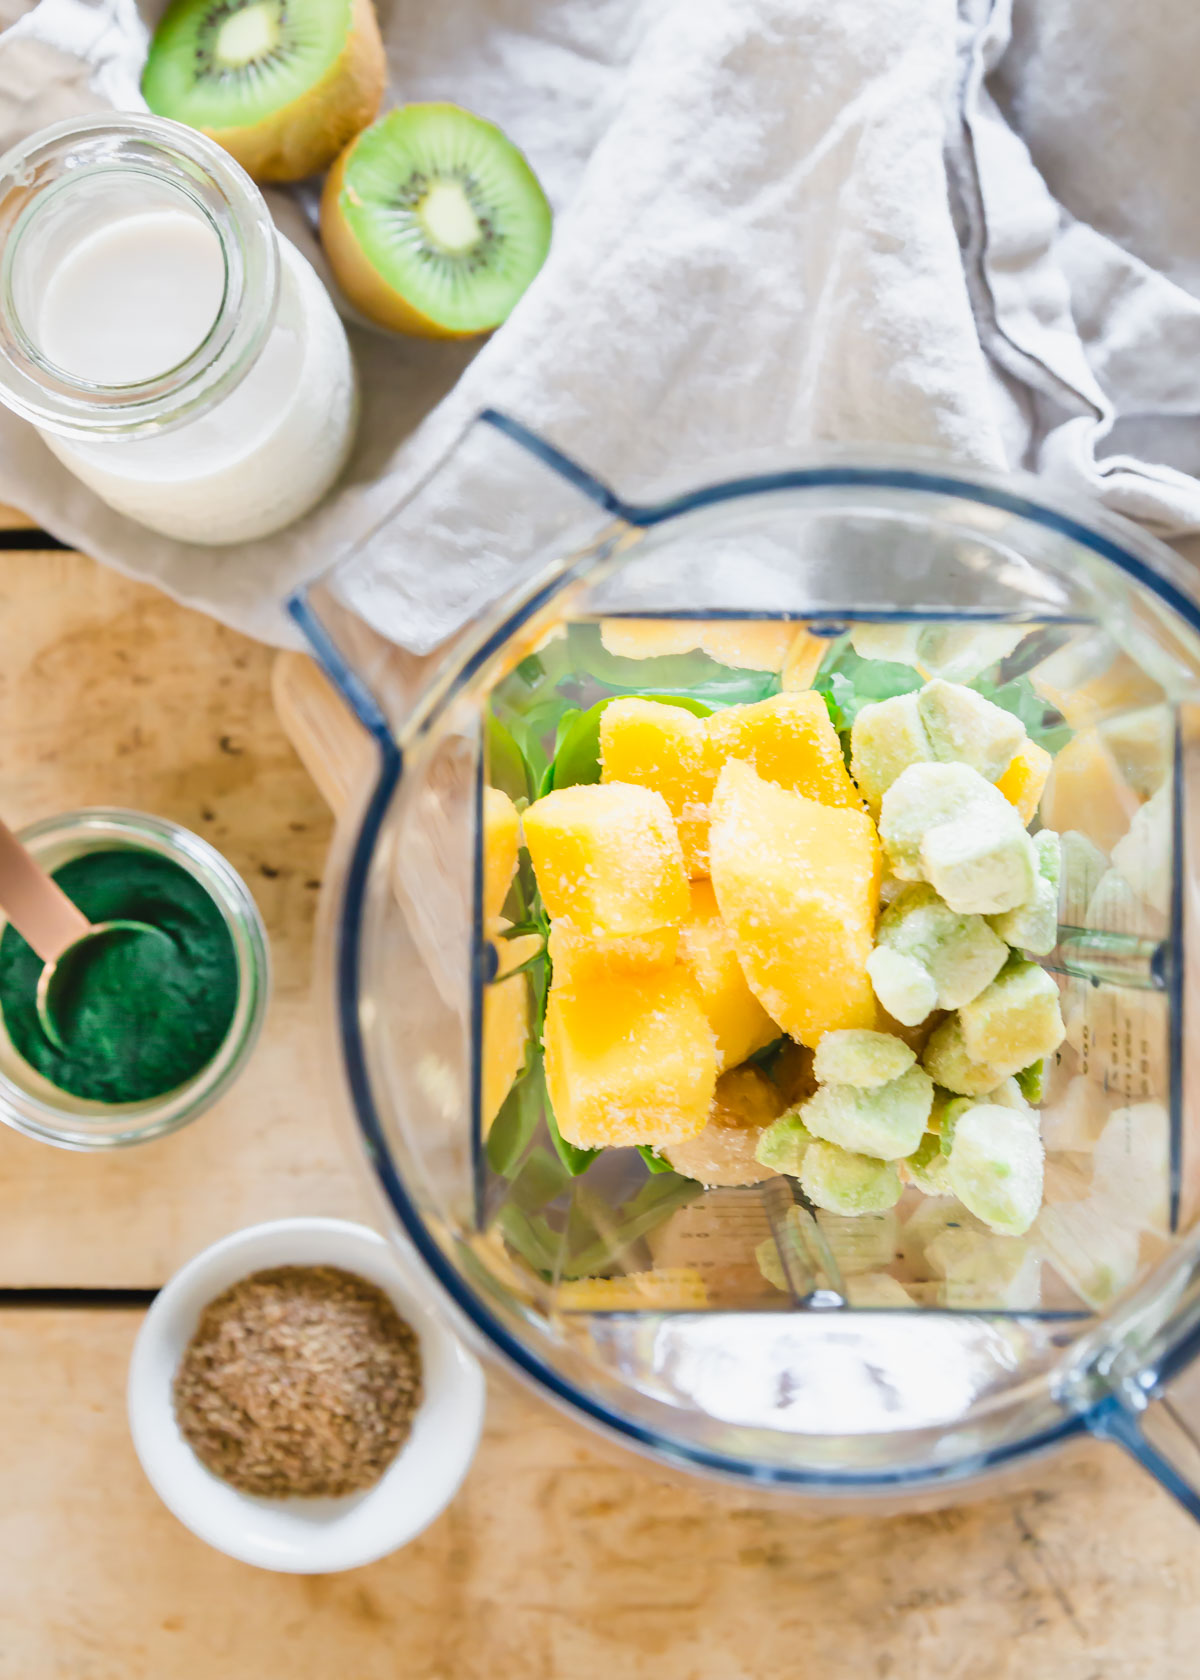 ingredients to make a spirulina smoothie in blender